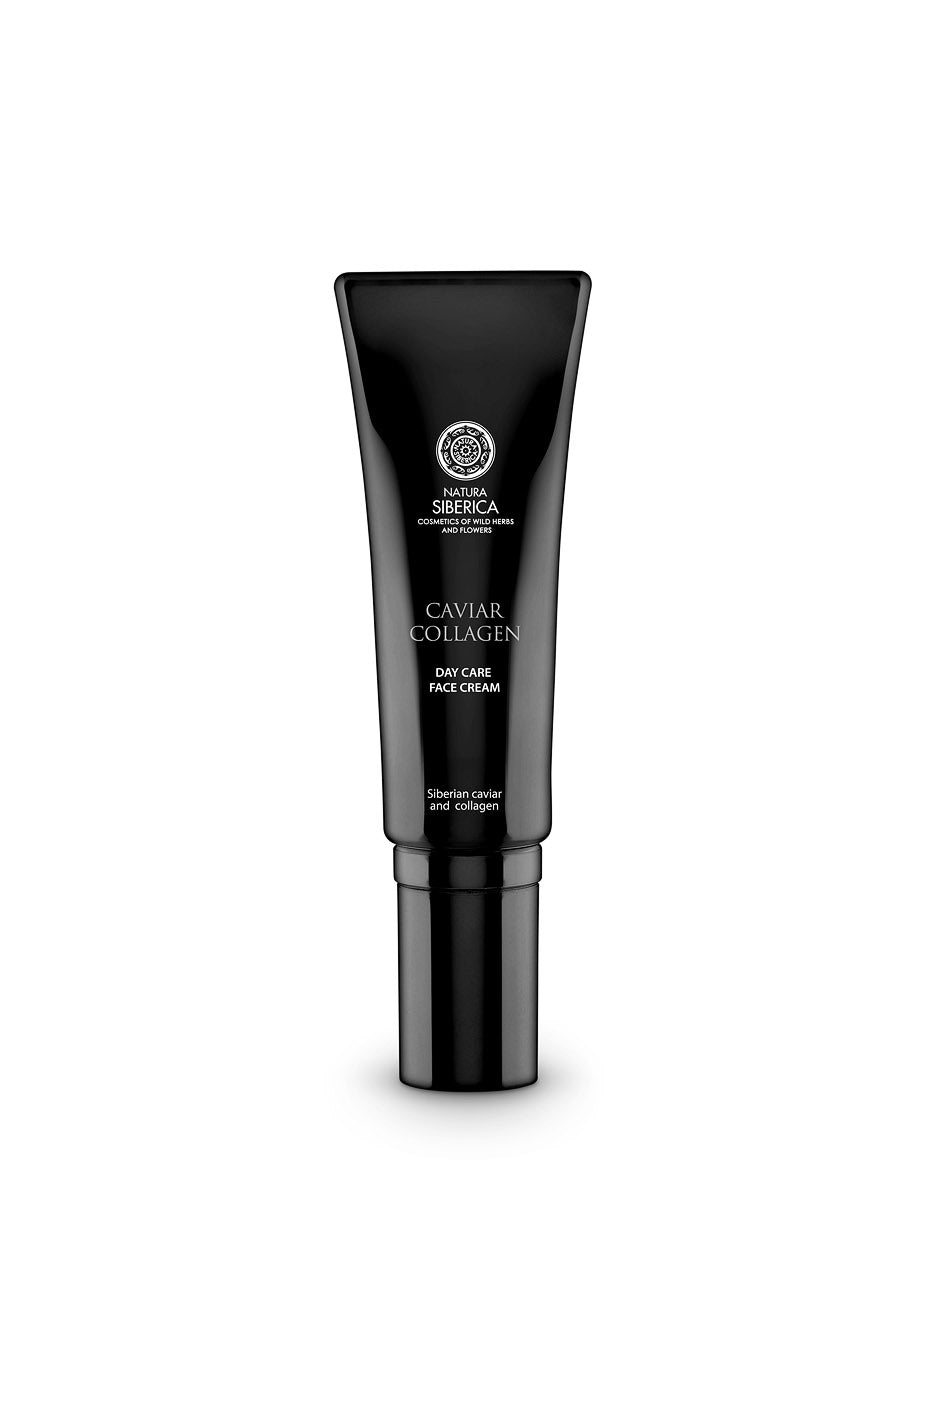 CAVIAR COLLAGEN CREMA FACIAL DE DÍA, 30 ML - Skinbotanics